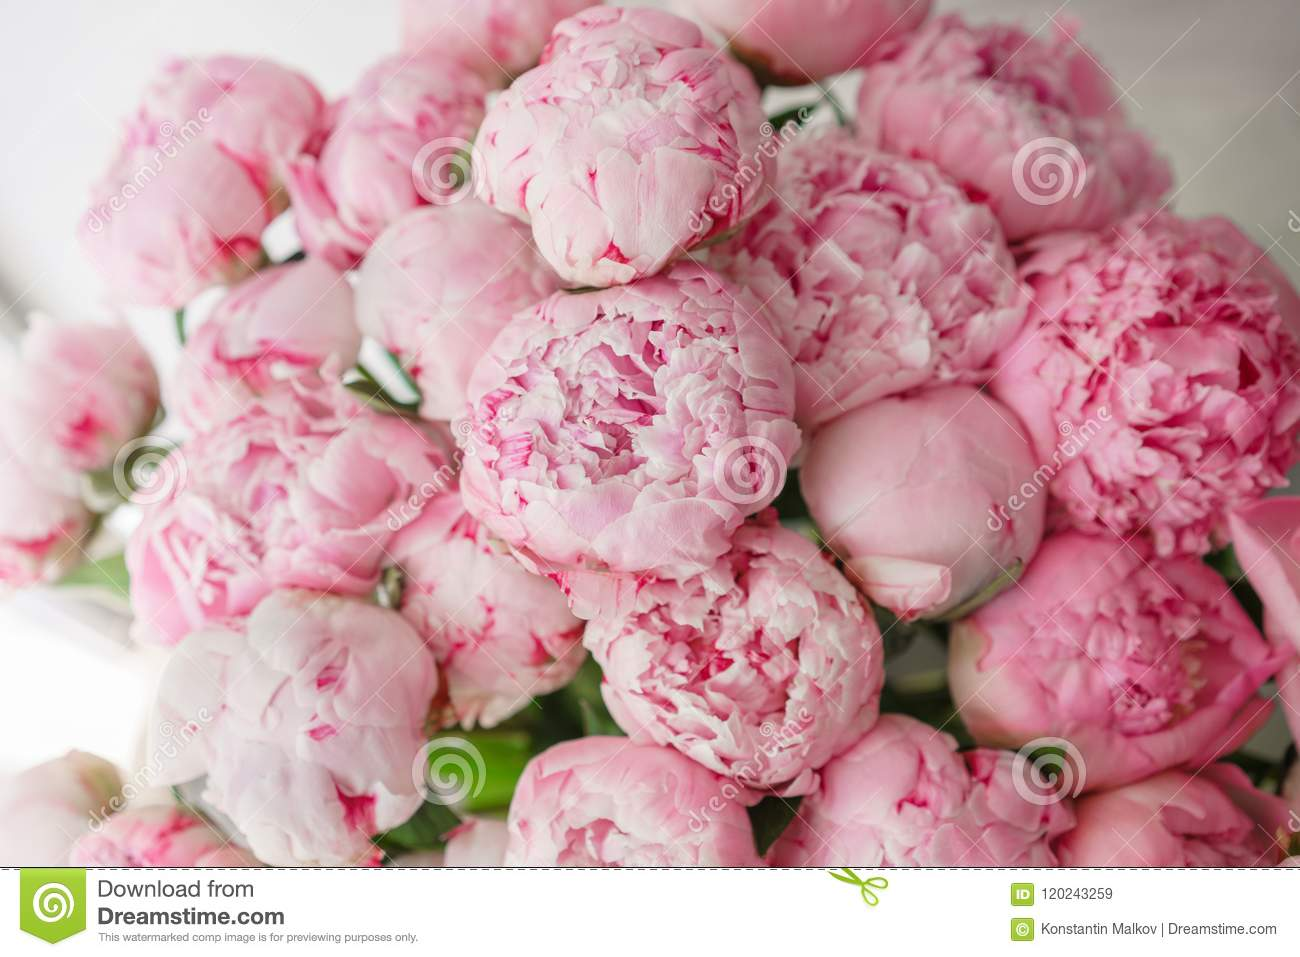 Wallpaper Lovely Flowers Pink Peonies Floral Compositions